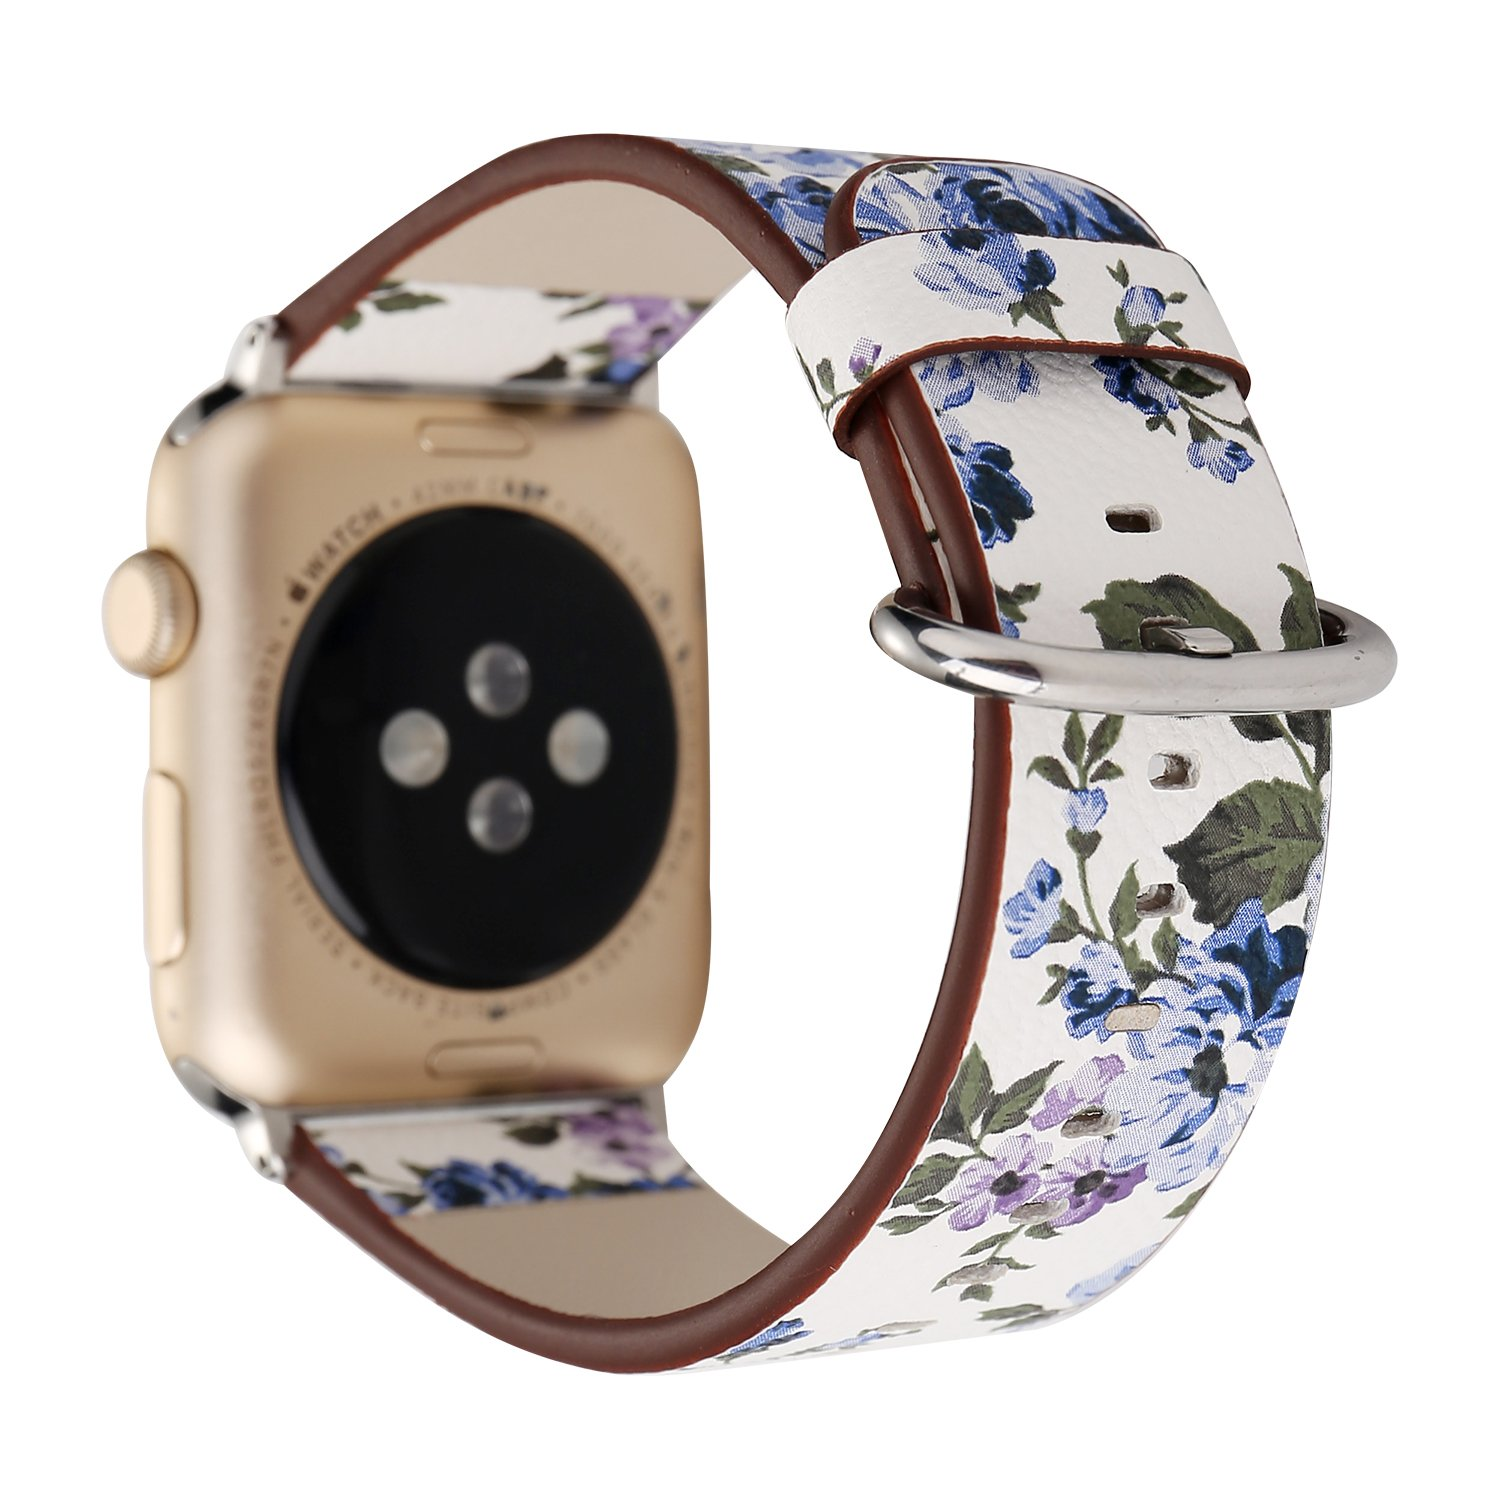 YOSWAN Apple Watch (アップルウォッチ用) フラワーデザイン レザー バンド 38mm/42mm [並行輸入品] (38mm, White+ Blue flower) 38mm|White+ Blue flower White+ Blue flower 38mm B075F6Z6GG